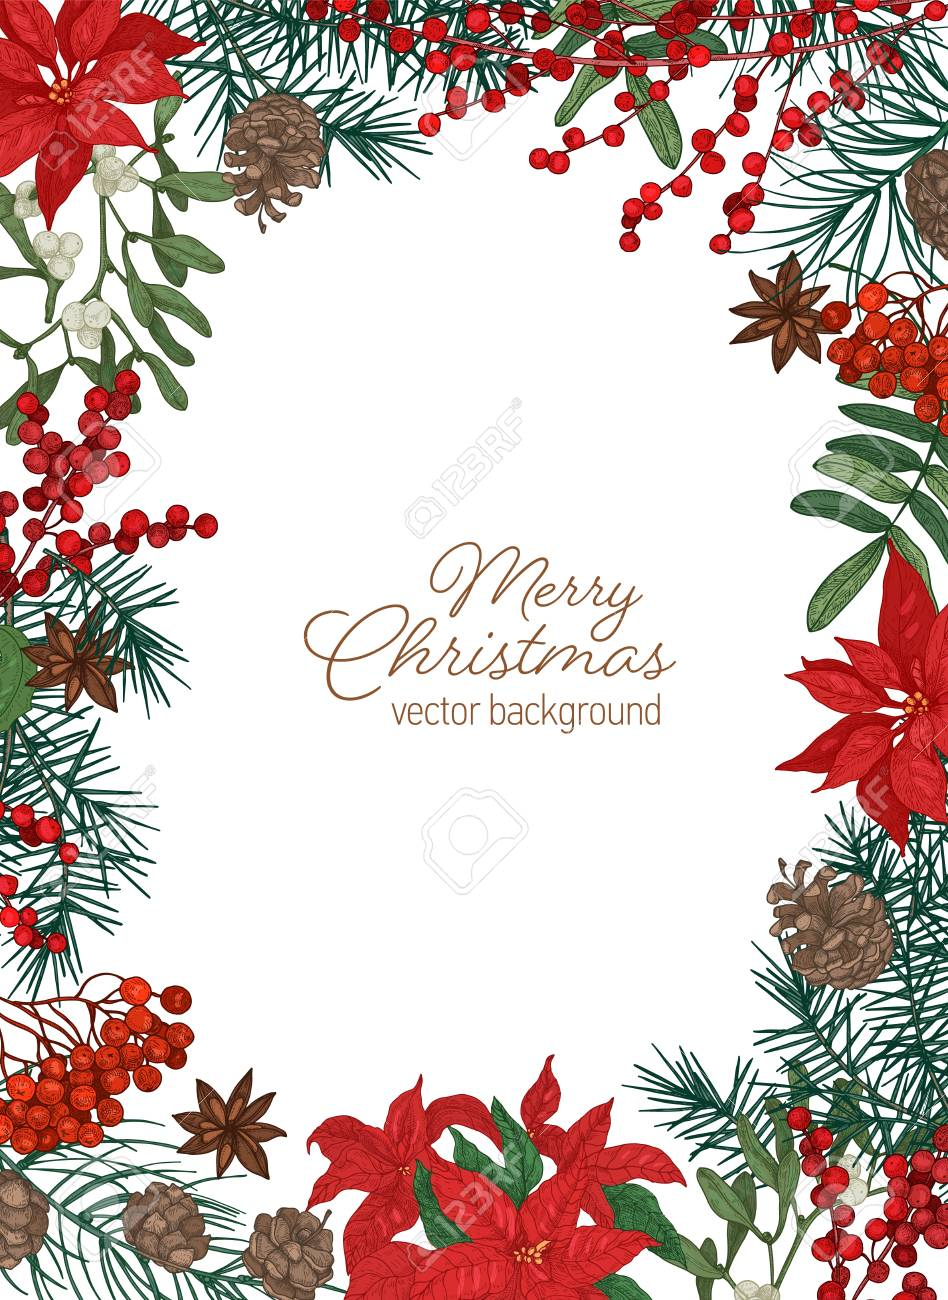 Christmas Greeting Card Template With Festive Wish Inside Border